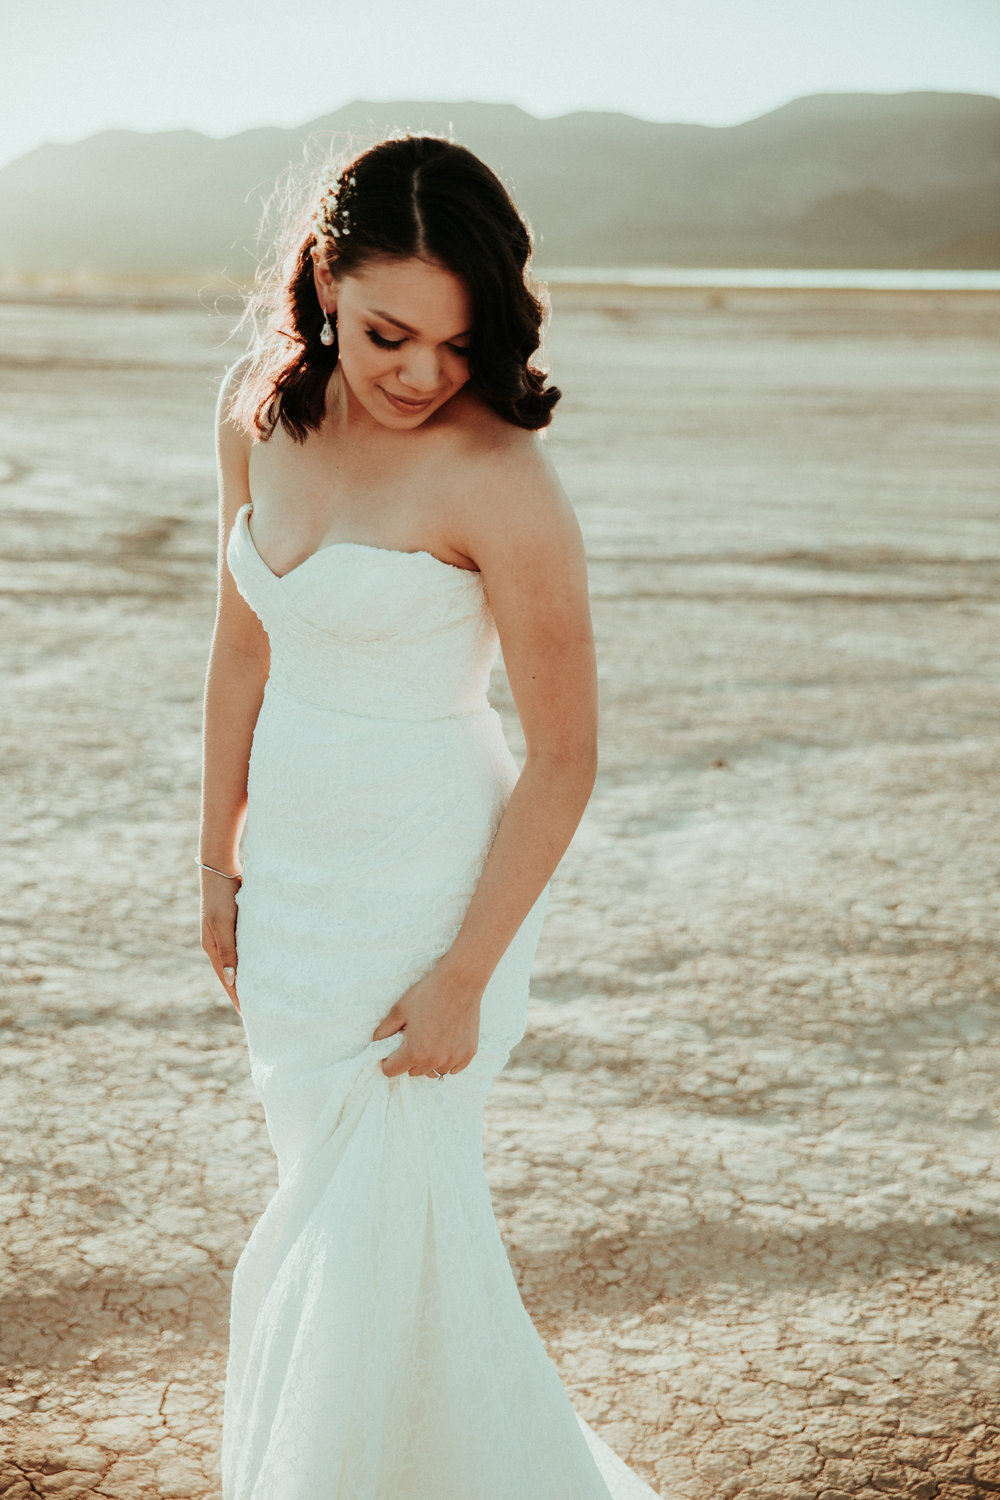 Bridal Portrait - Bride - First Look - Las Vegas Wedding Photographer - Seattle Wedding Photographer - PNW Elopement Photographer - Henderson, NV - Portland Wedding Photographer